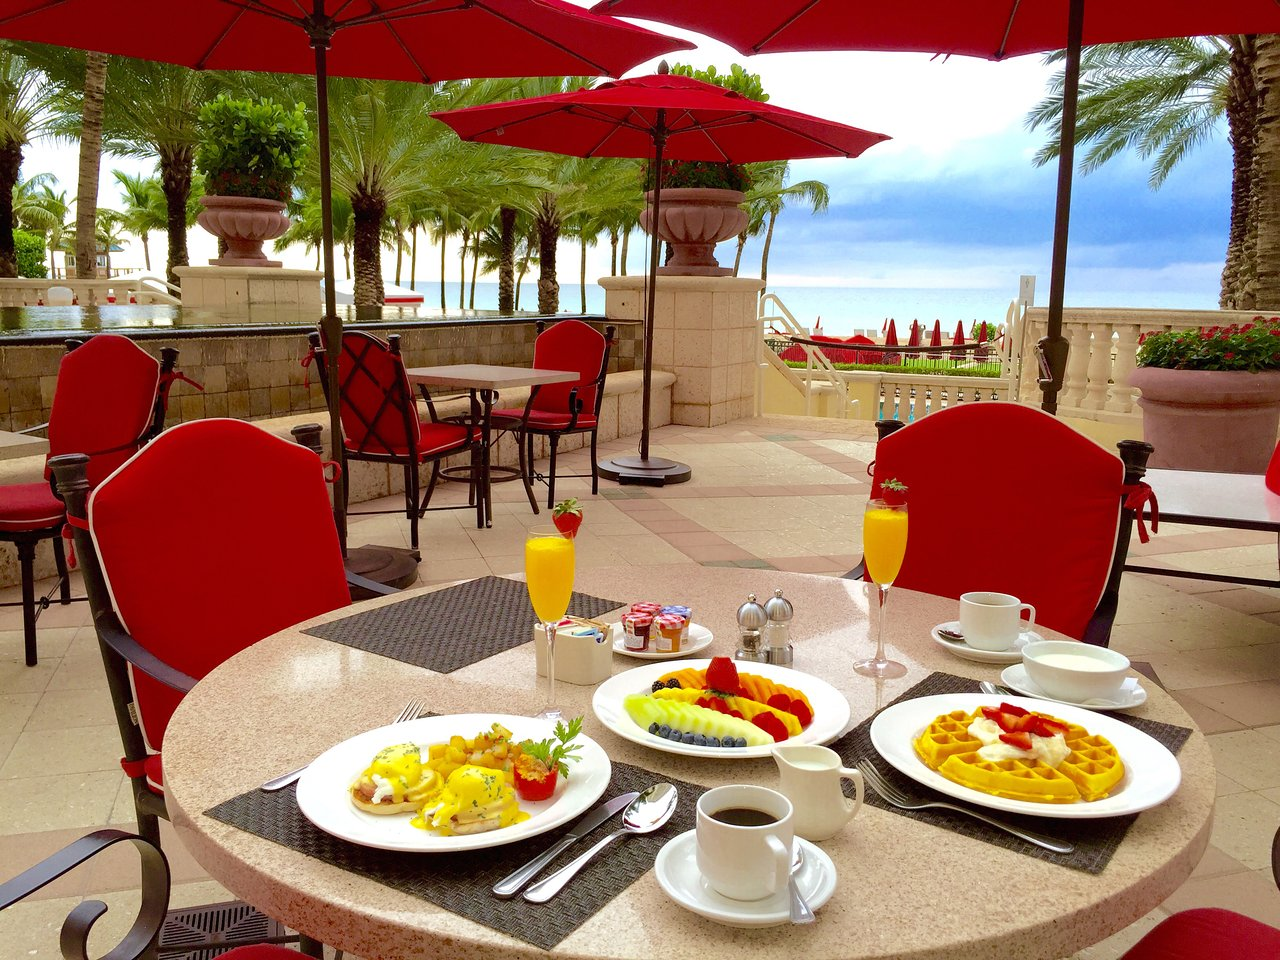 ACQUALINA RESORT & SPA ON THE BEACH - Updated 2019 Prices